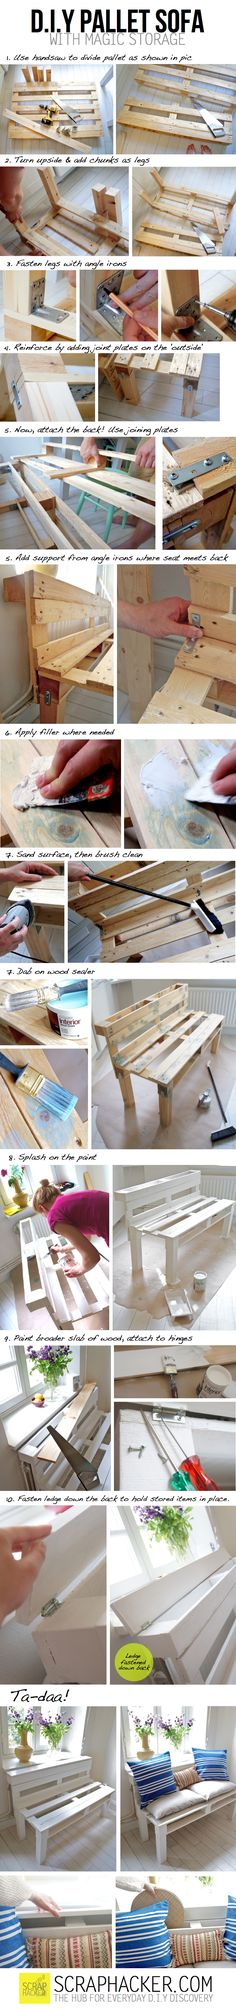 diy pallet, decor, project, craft, idea